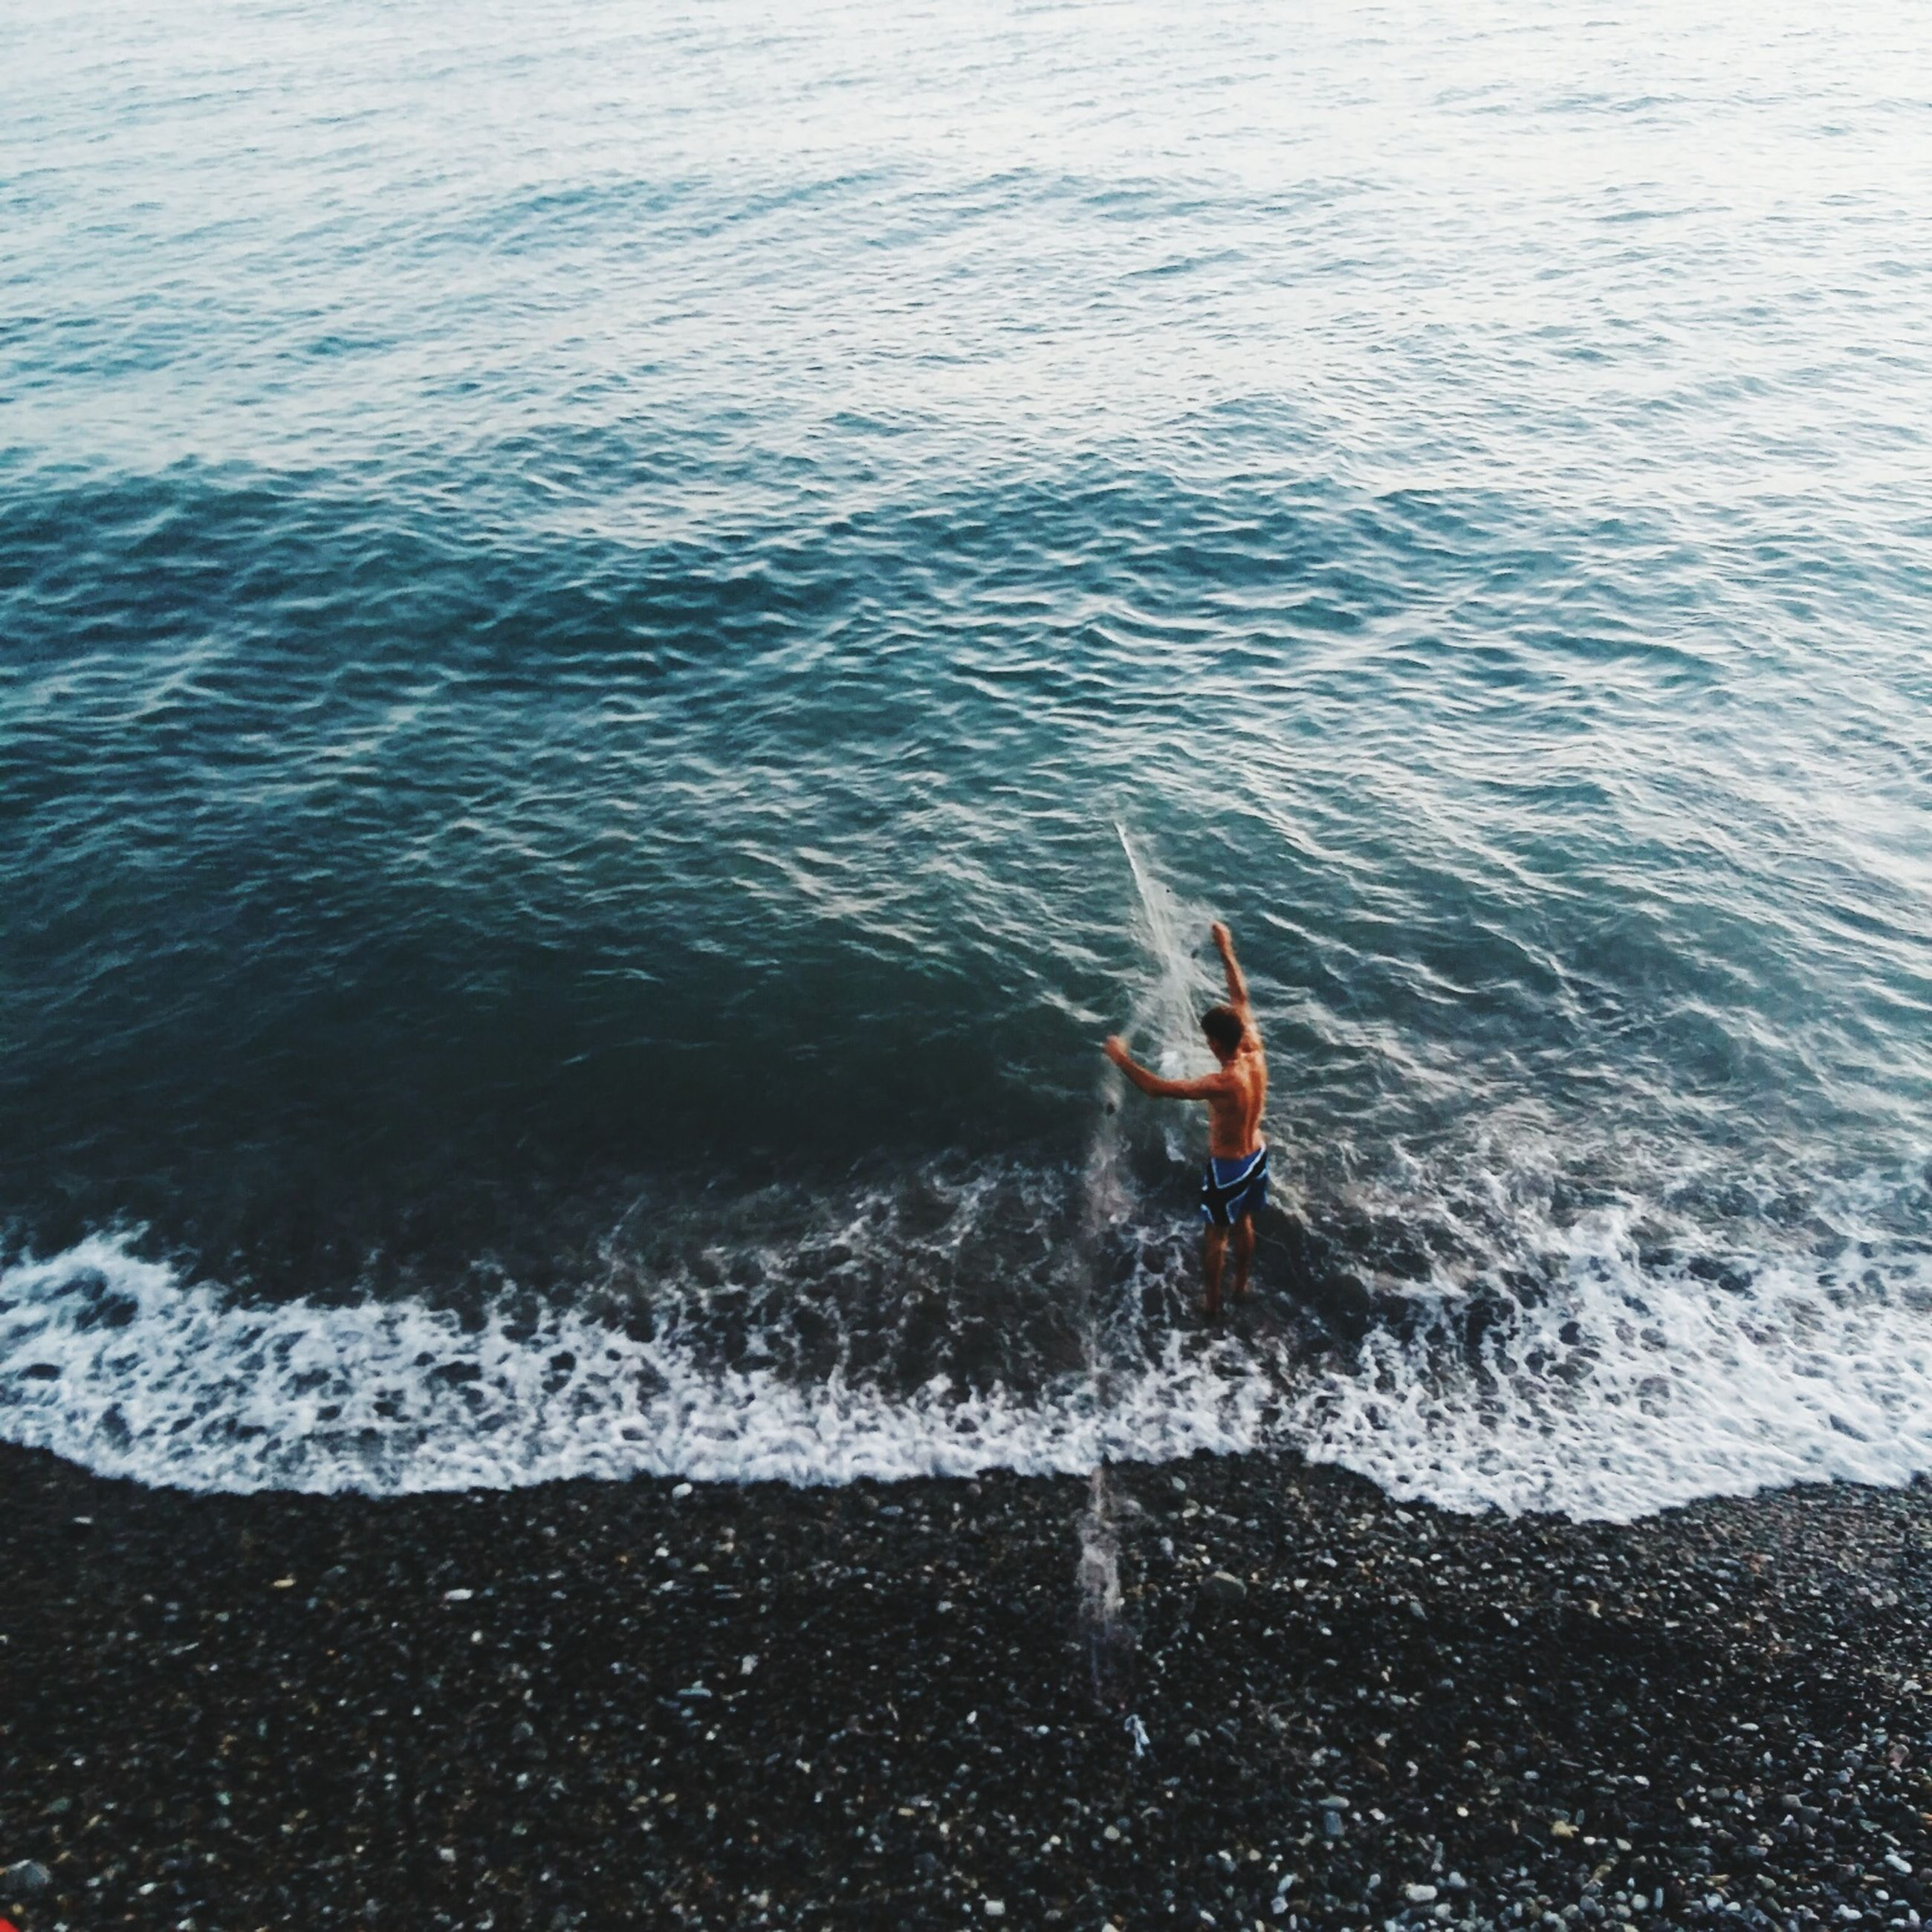 sea, water, lifestyles, real people, leisure activity, one person, adventure, waterfront, day, men, outdoors, nautical vessel, extreme sports, nature, beauty in nature, wave, scenics, wake - water, people